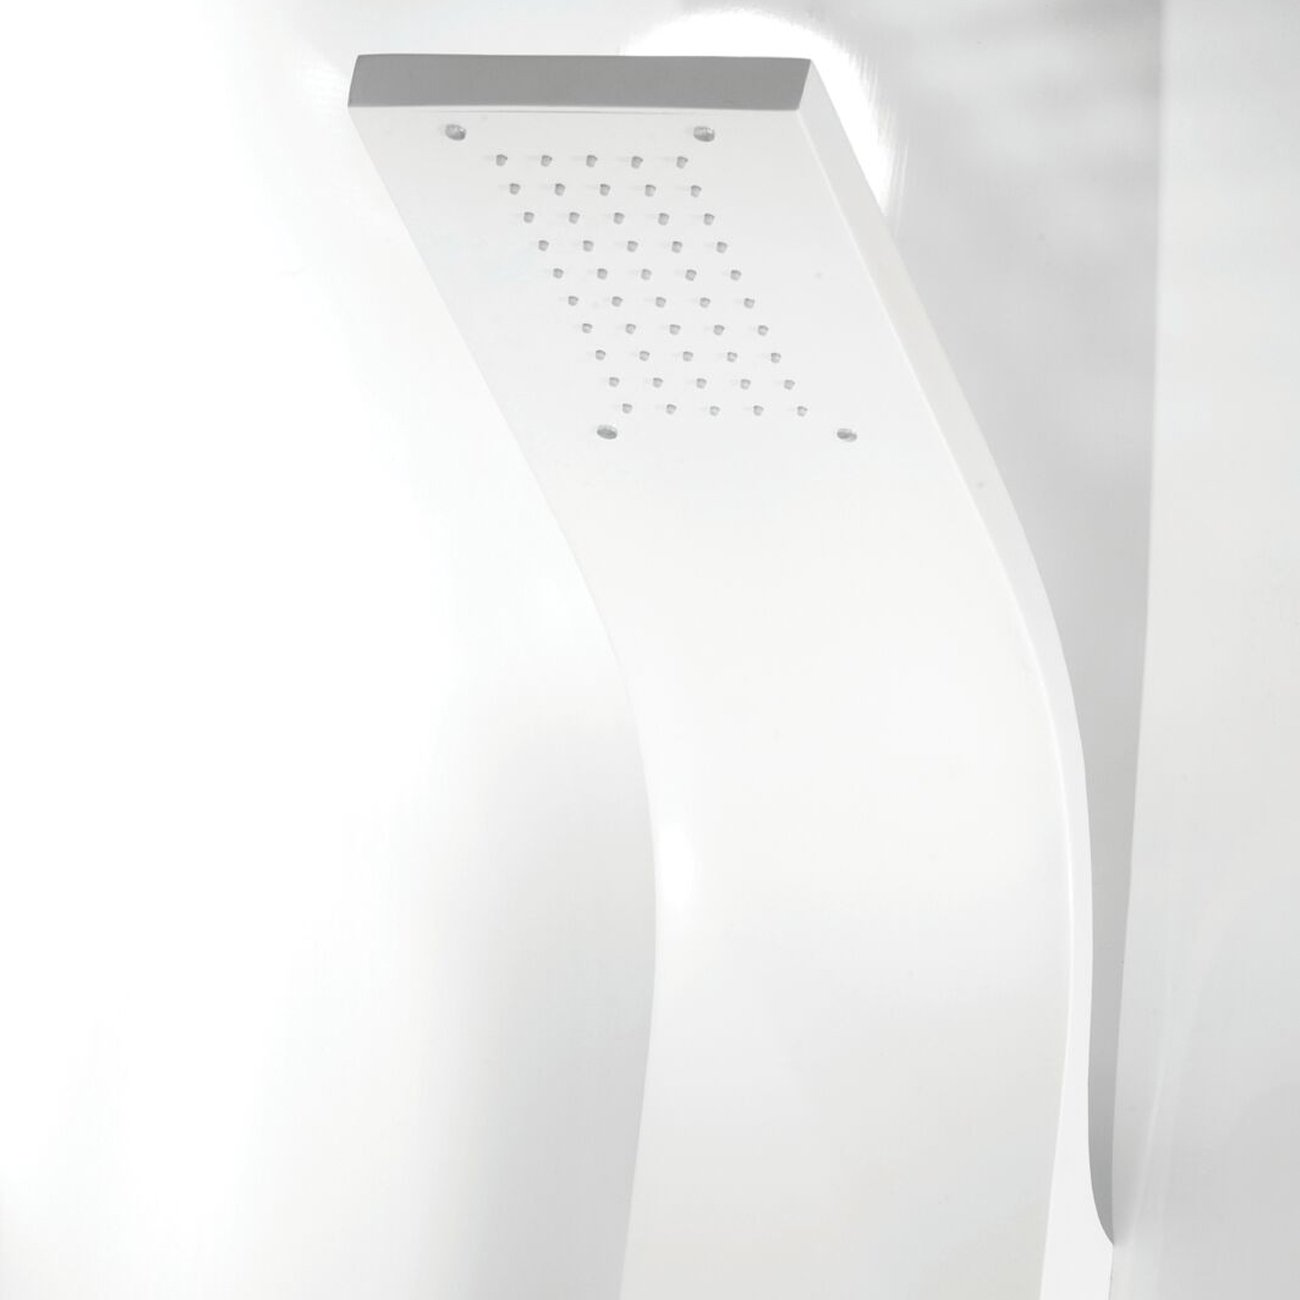 Cali Luna Thermostatic Shower Panel - White